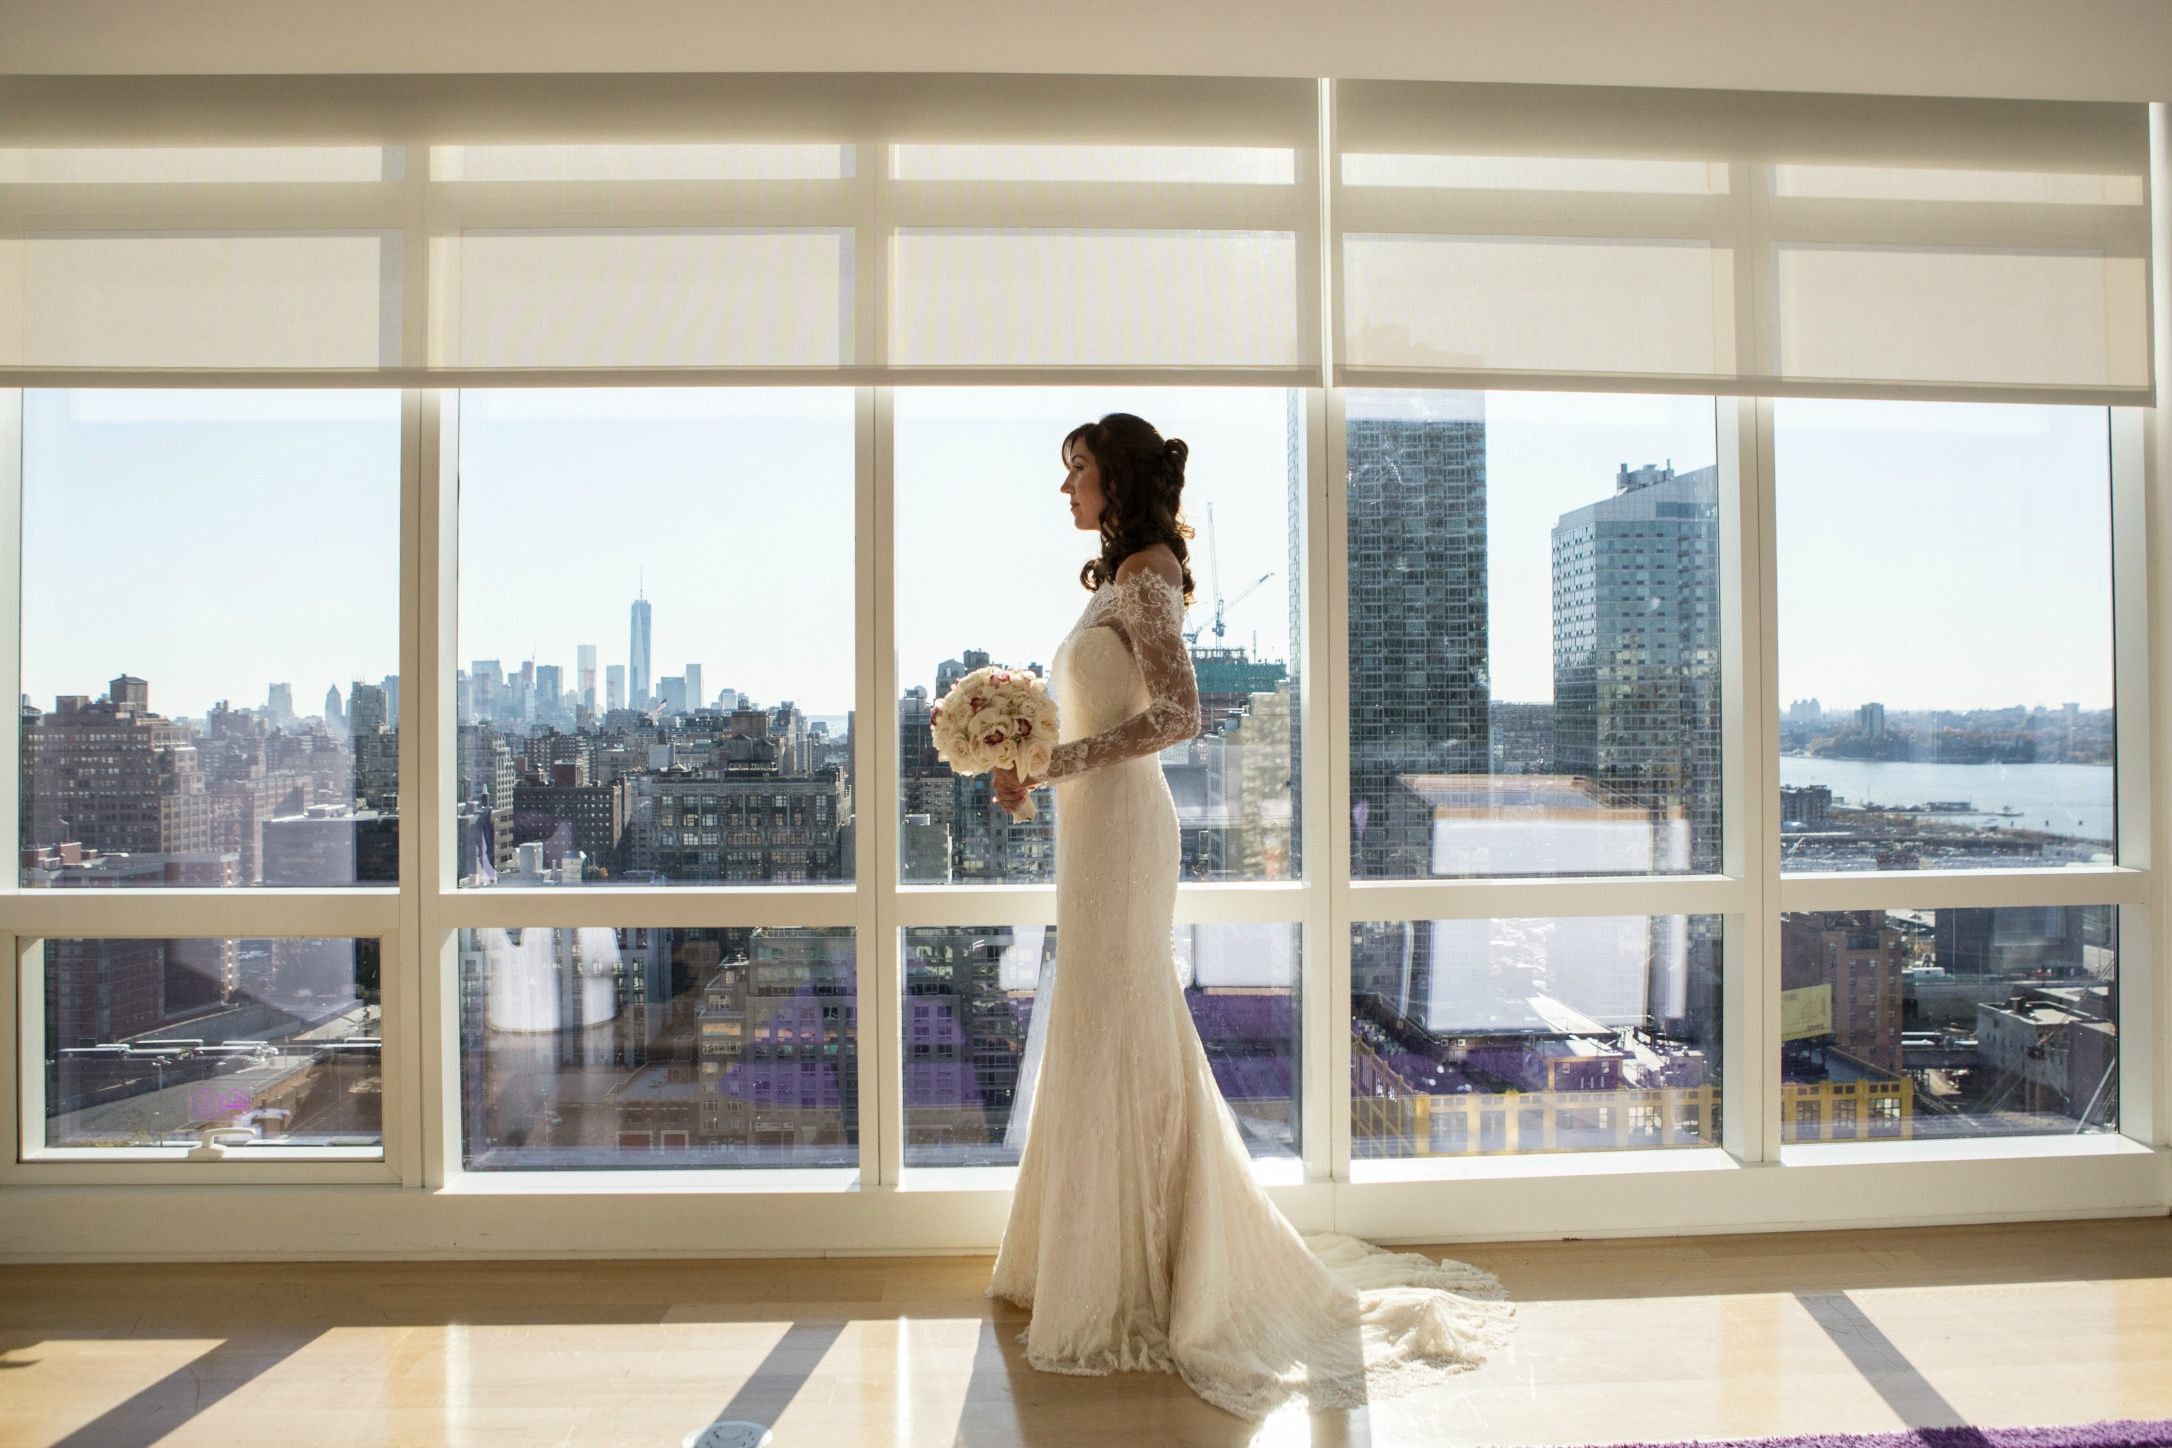 NYC Chic Winter Wedding ǀ Dee Kay Events ǀ Wedding Consultant ǀ Wedding Design ǀ Bride Dress and Bouquet